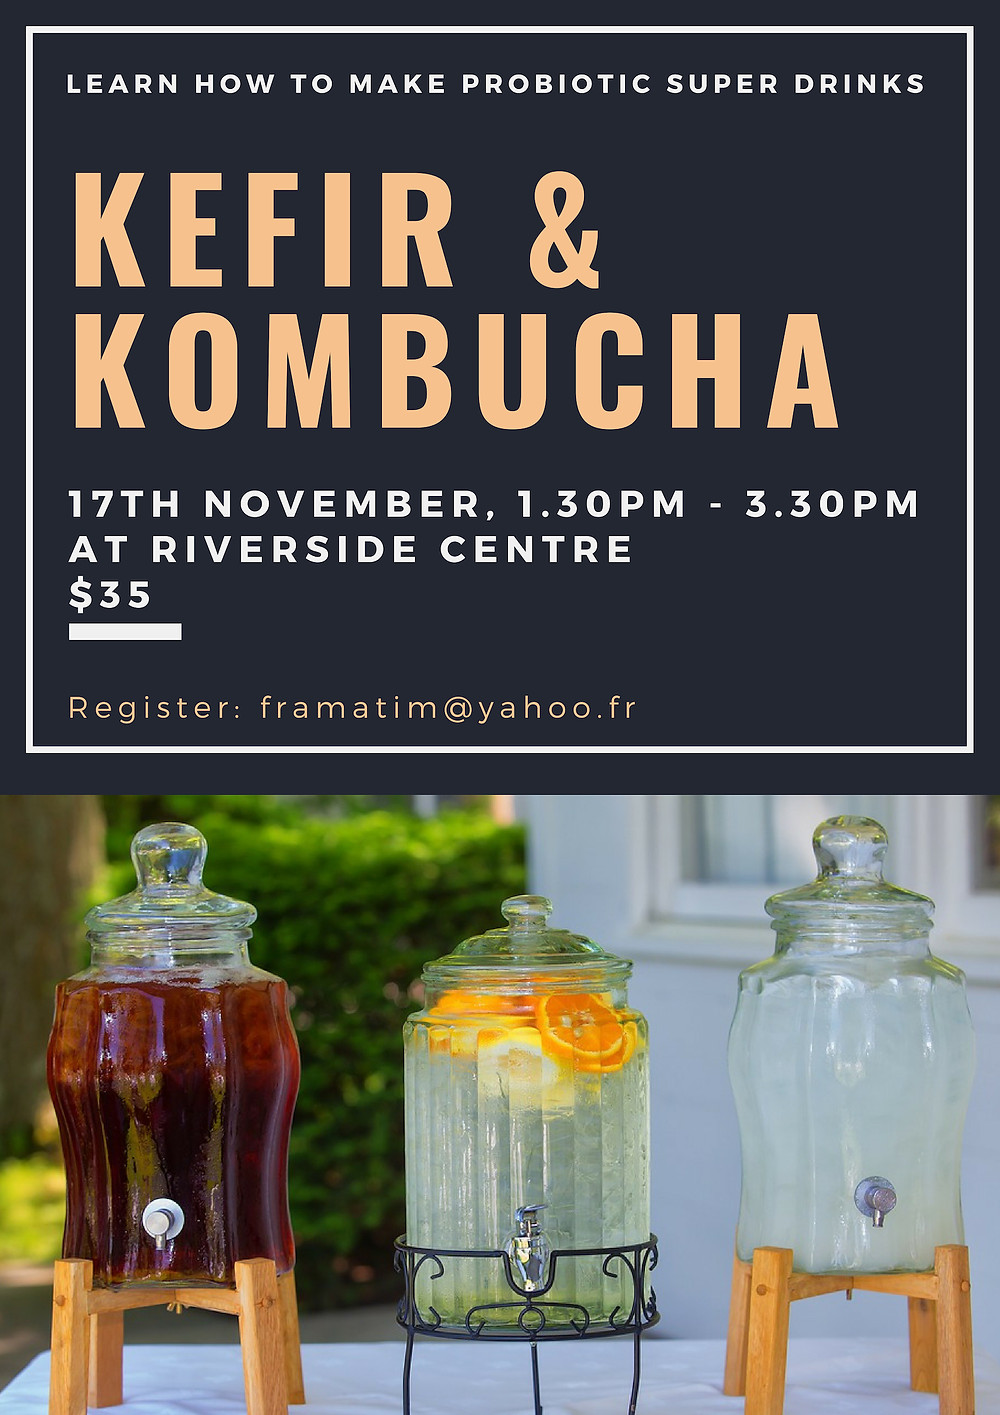 Kefir & Kombucha Workshop at Riverside